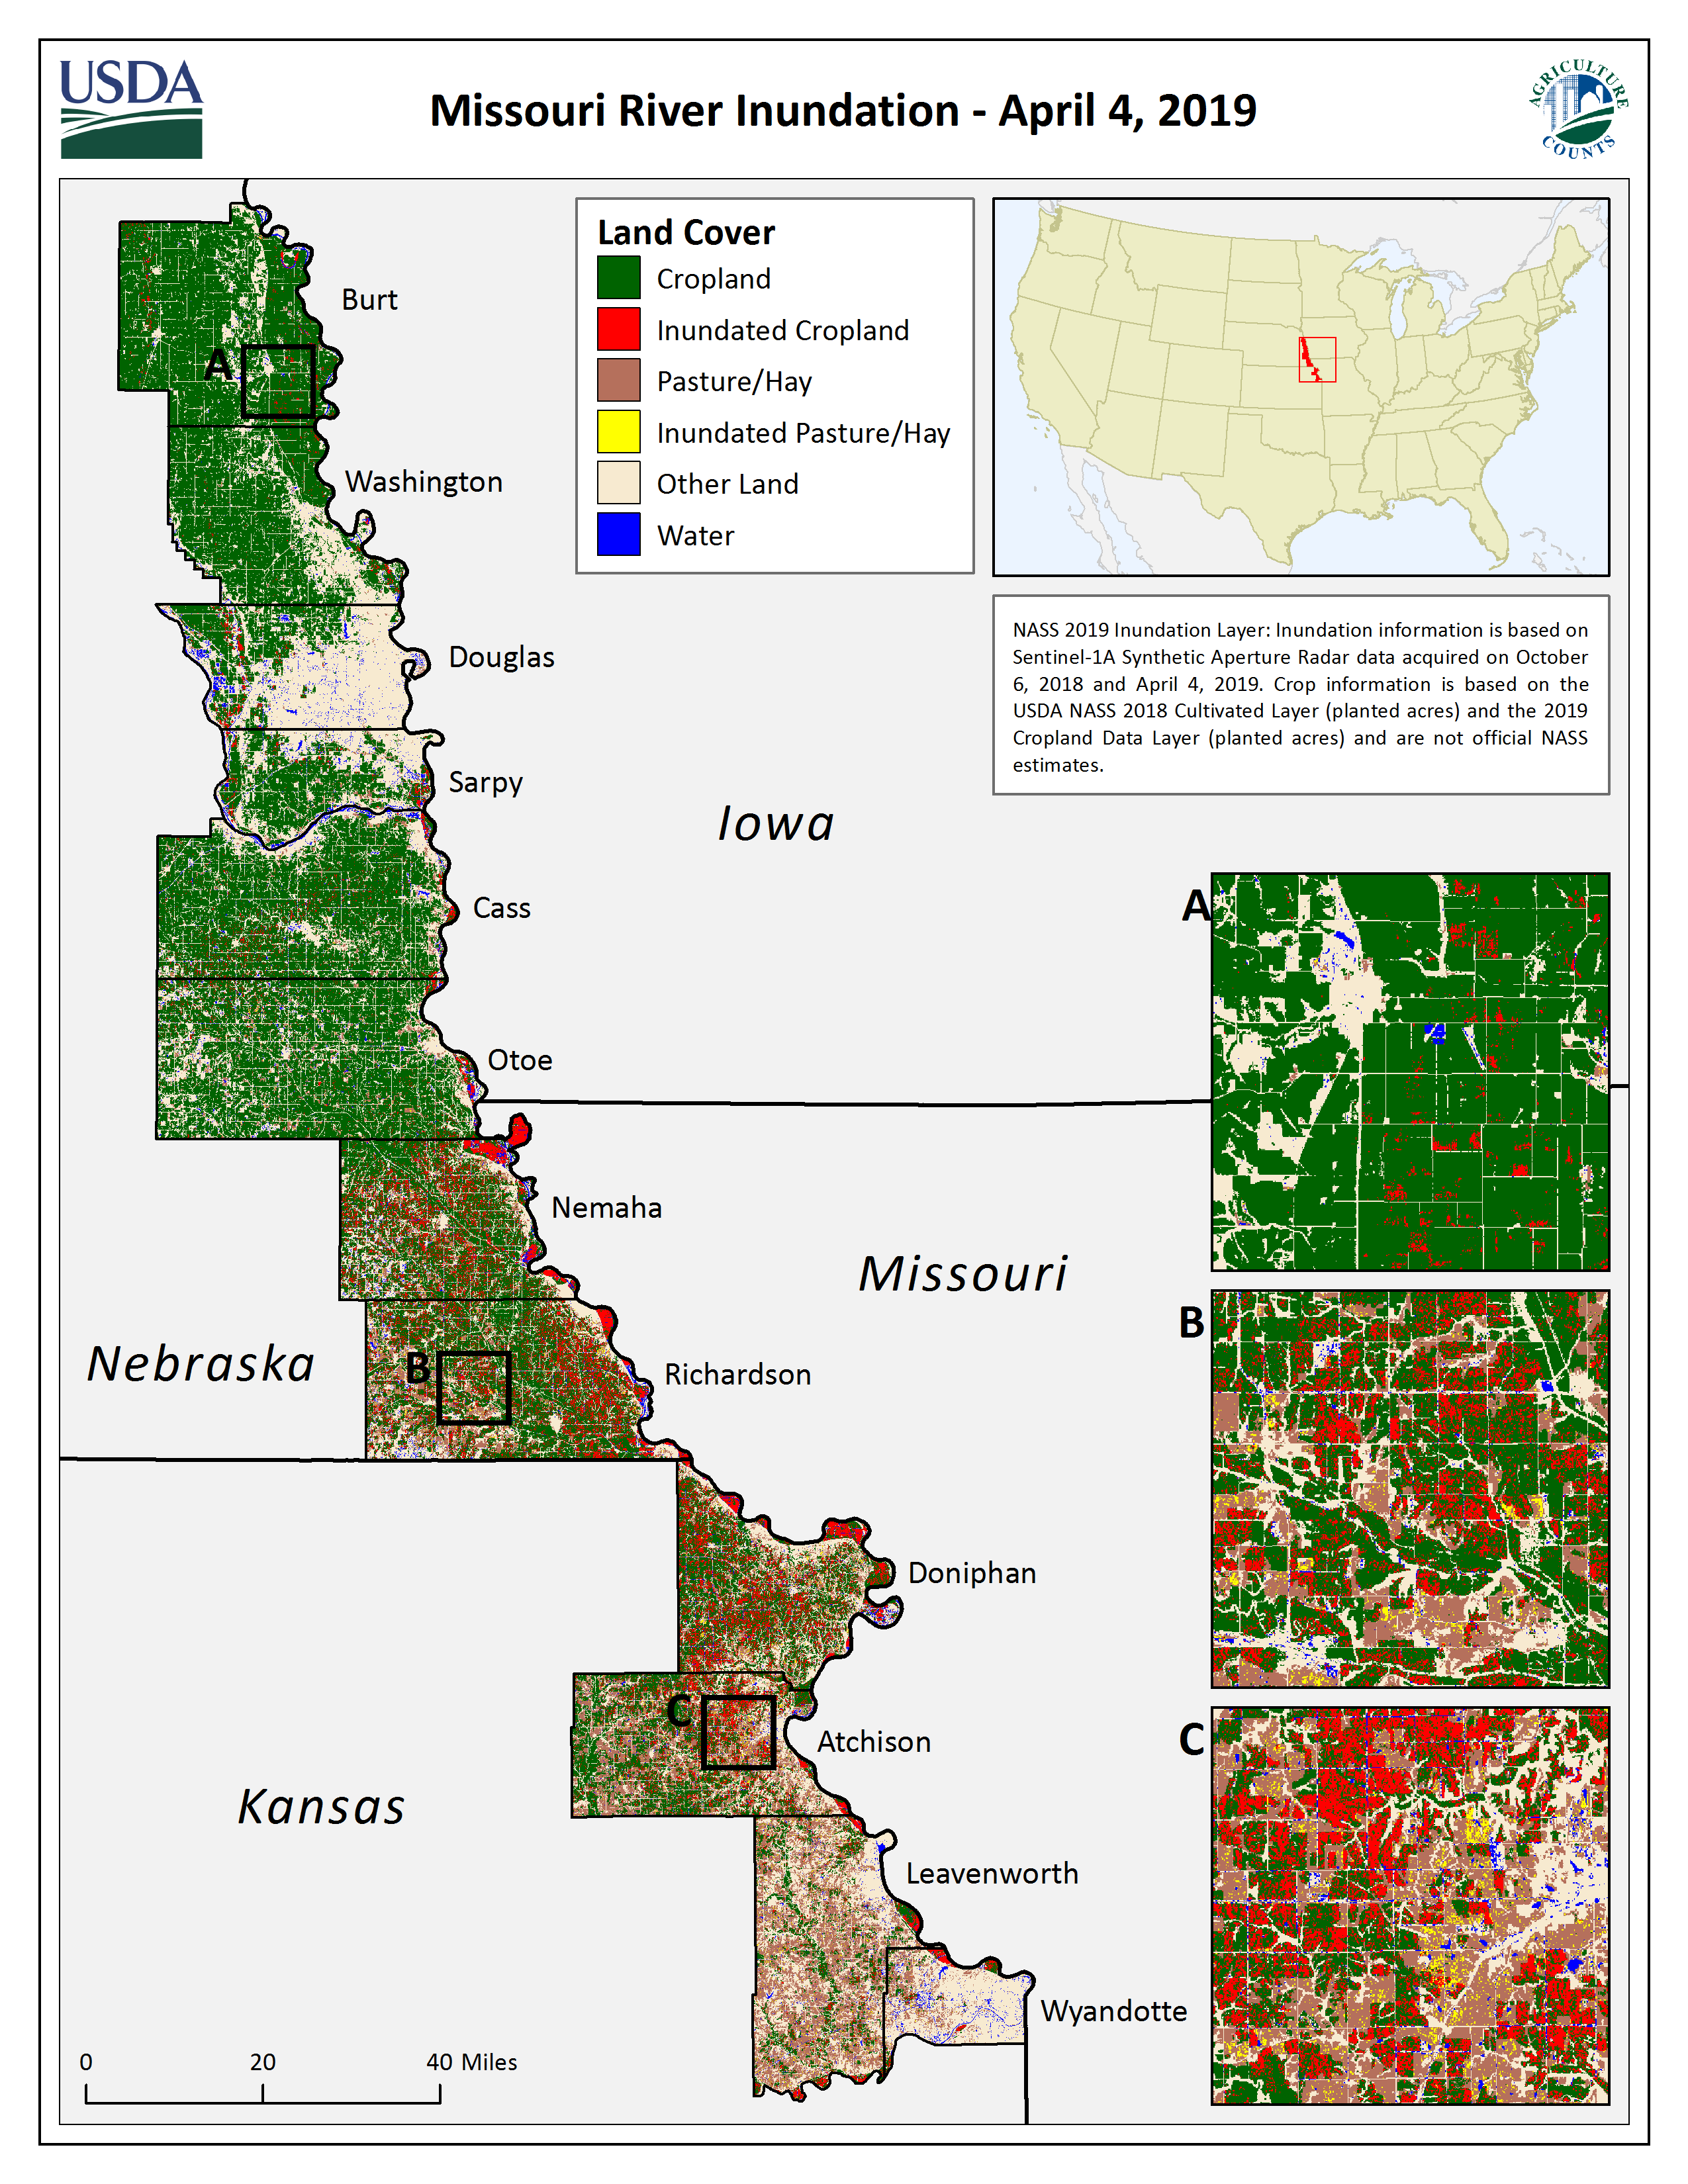 Map of Missouri River Inundation (April 4, 2019)